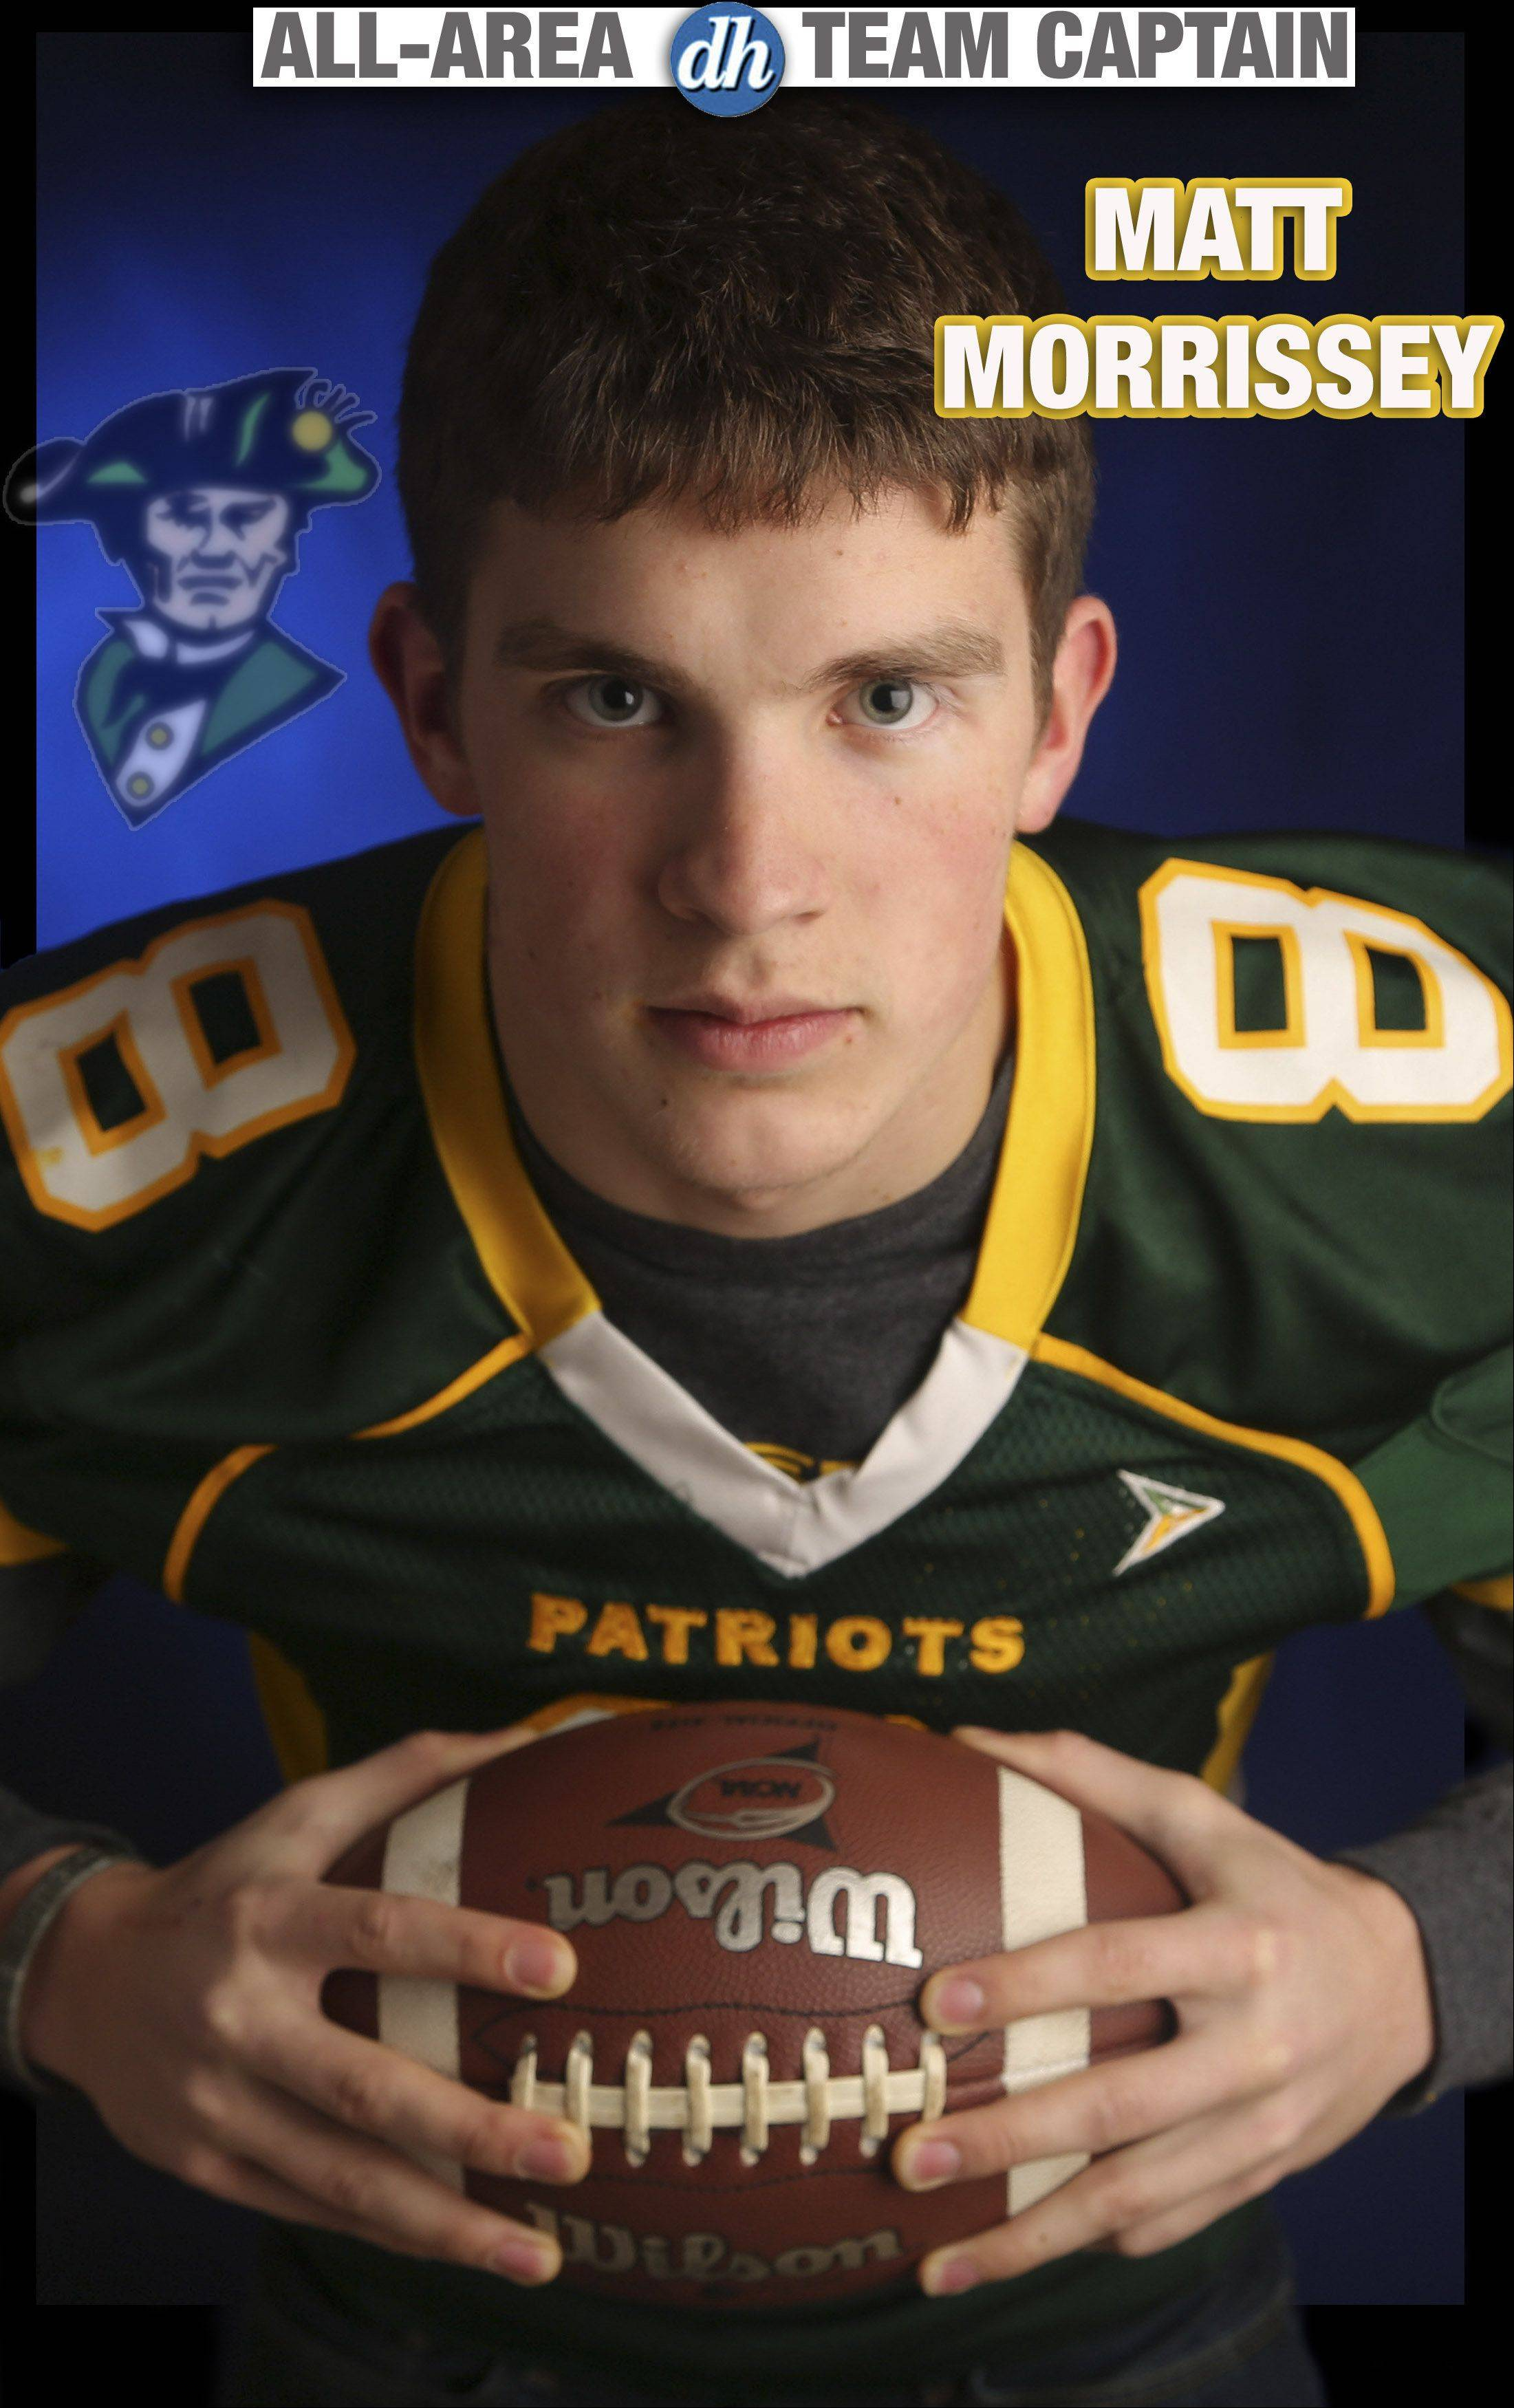 Matt Morrissey of Stevenson is a Daily Herald All-Area Team Captain in football for 2013.